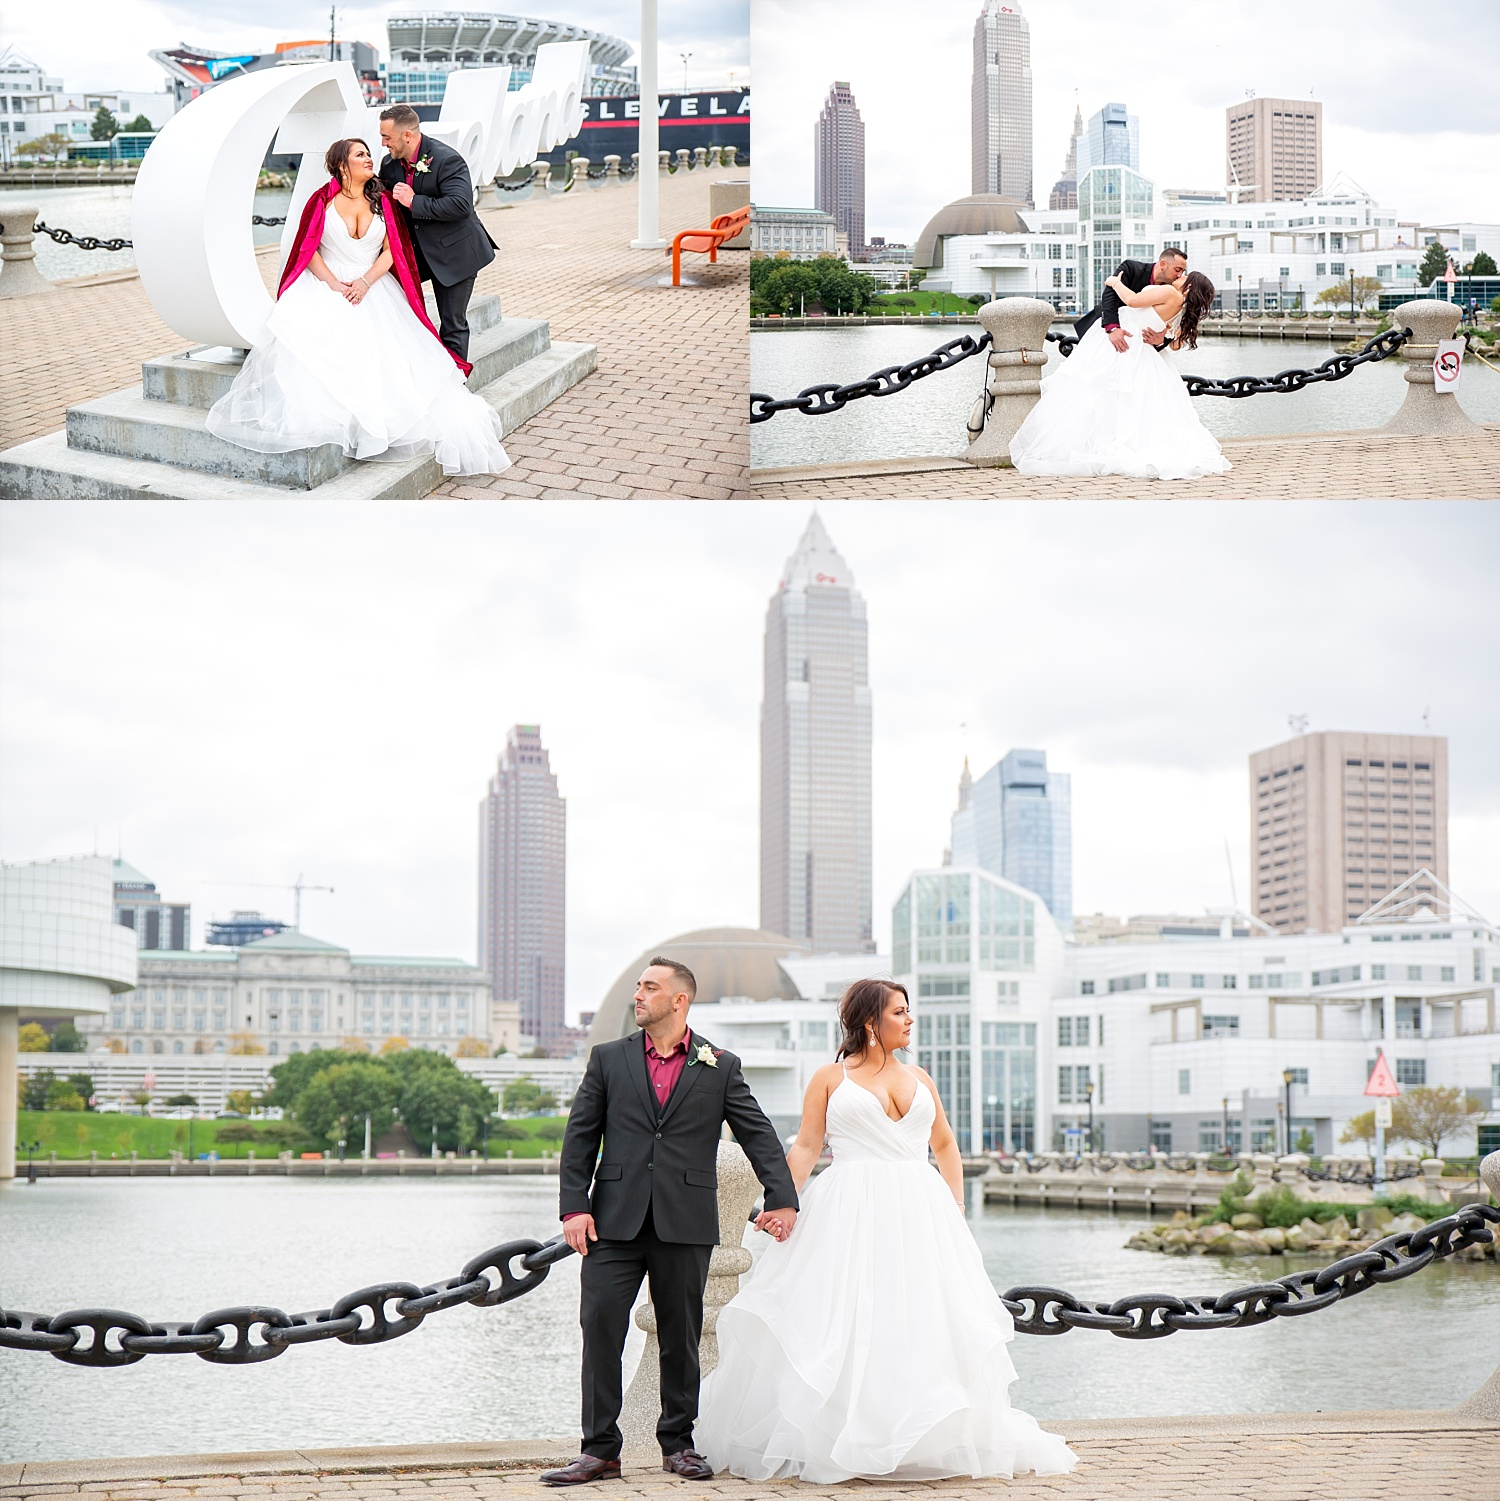 Hannah-cessna-photography-akron-cleveland-ohio-wedding-photograper_0092.jpg